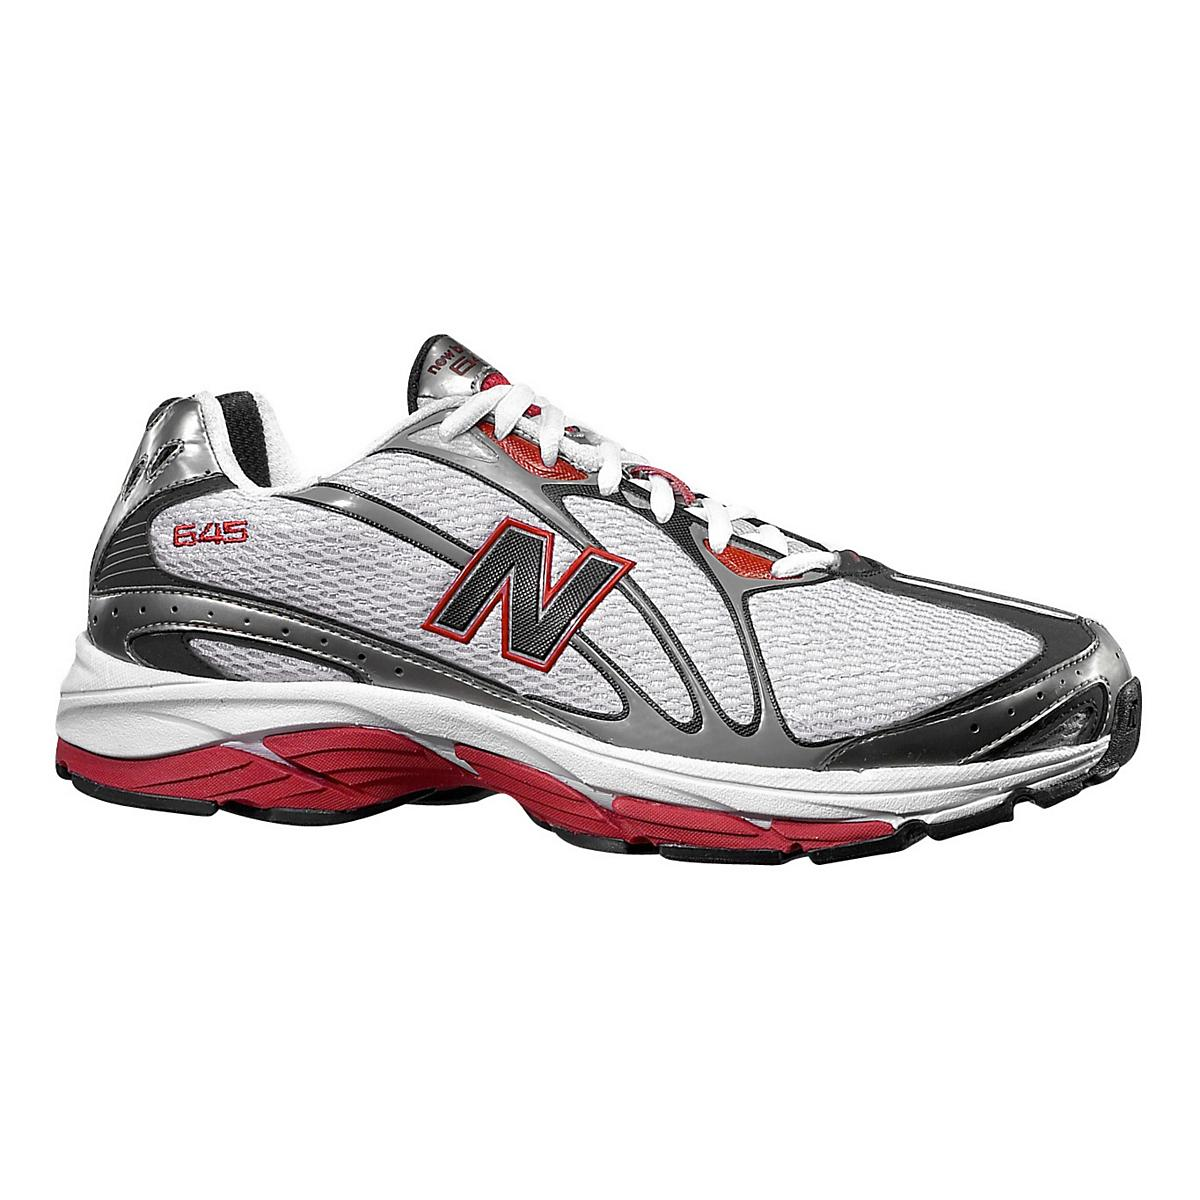 bcce942e7a3a8 Mens New Balance 645 Running Shoe at Road Runner Sports